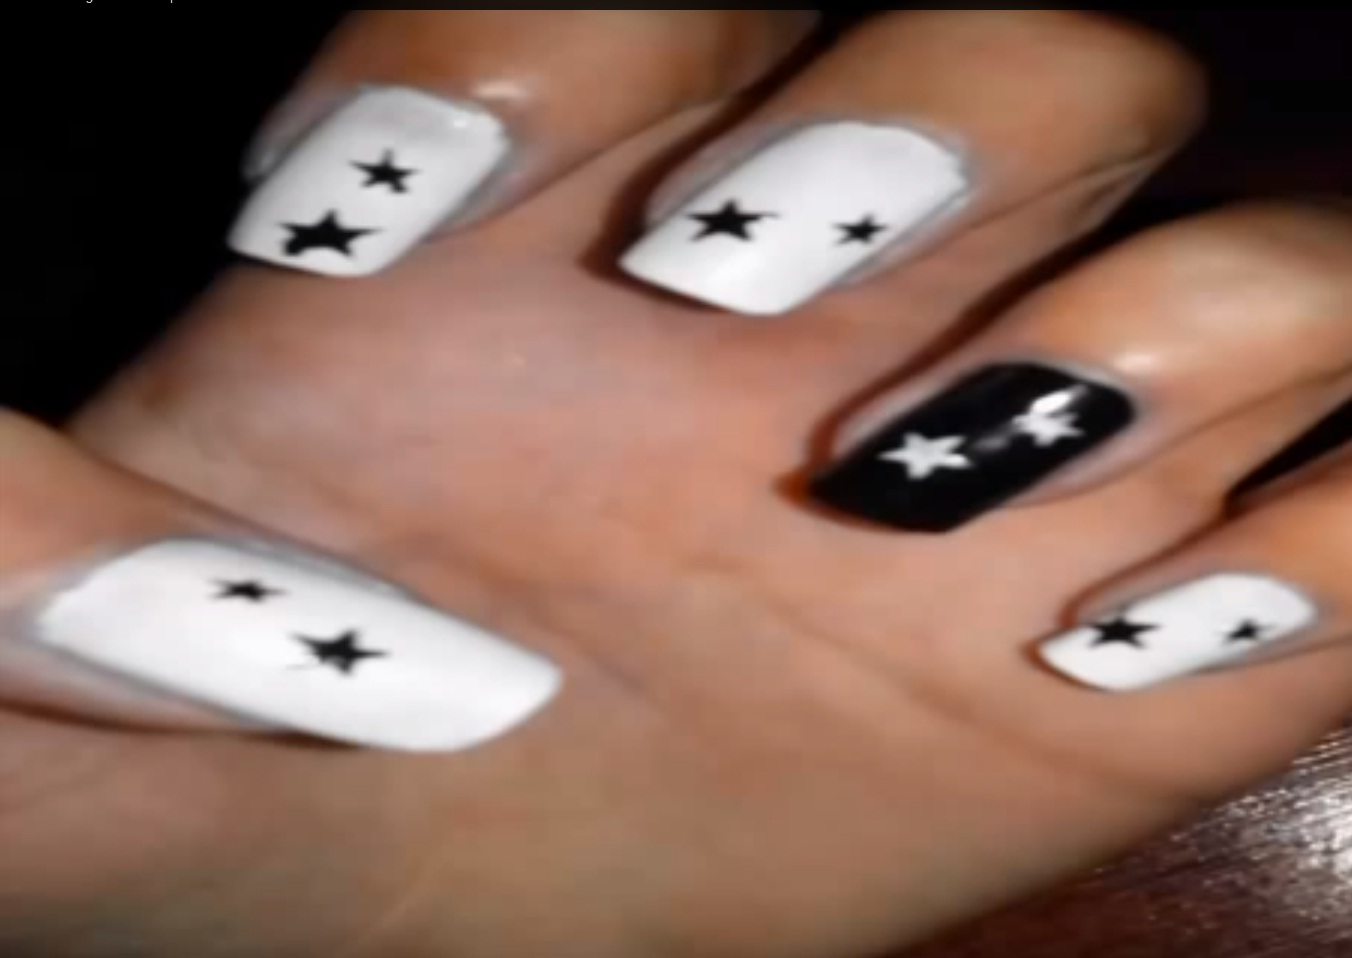 Star Nail Design Cute And Quick